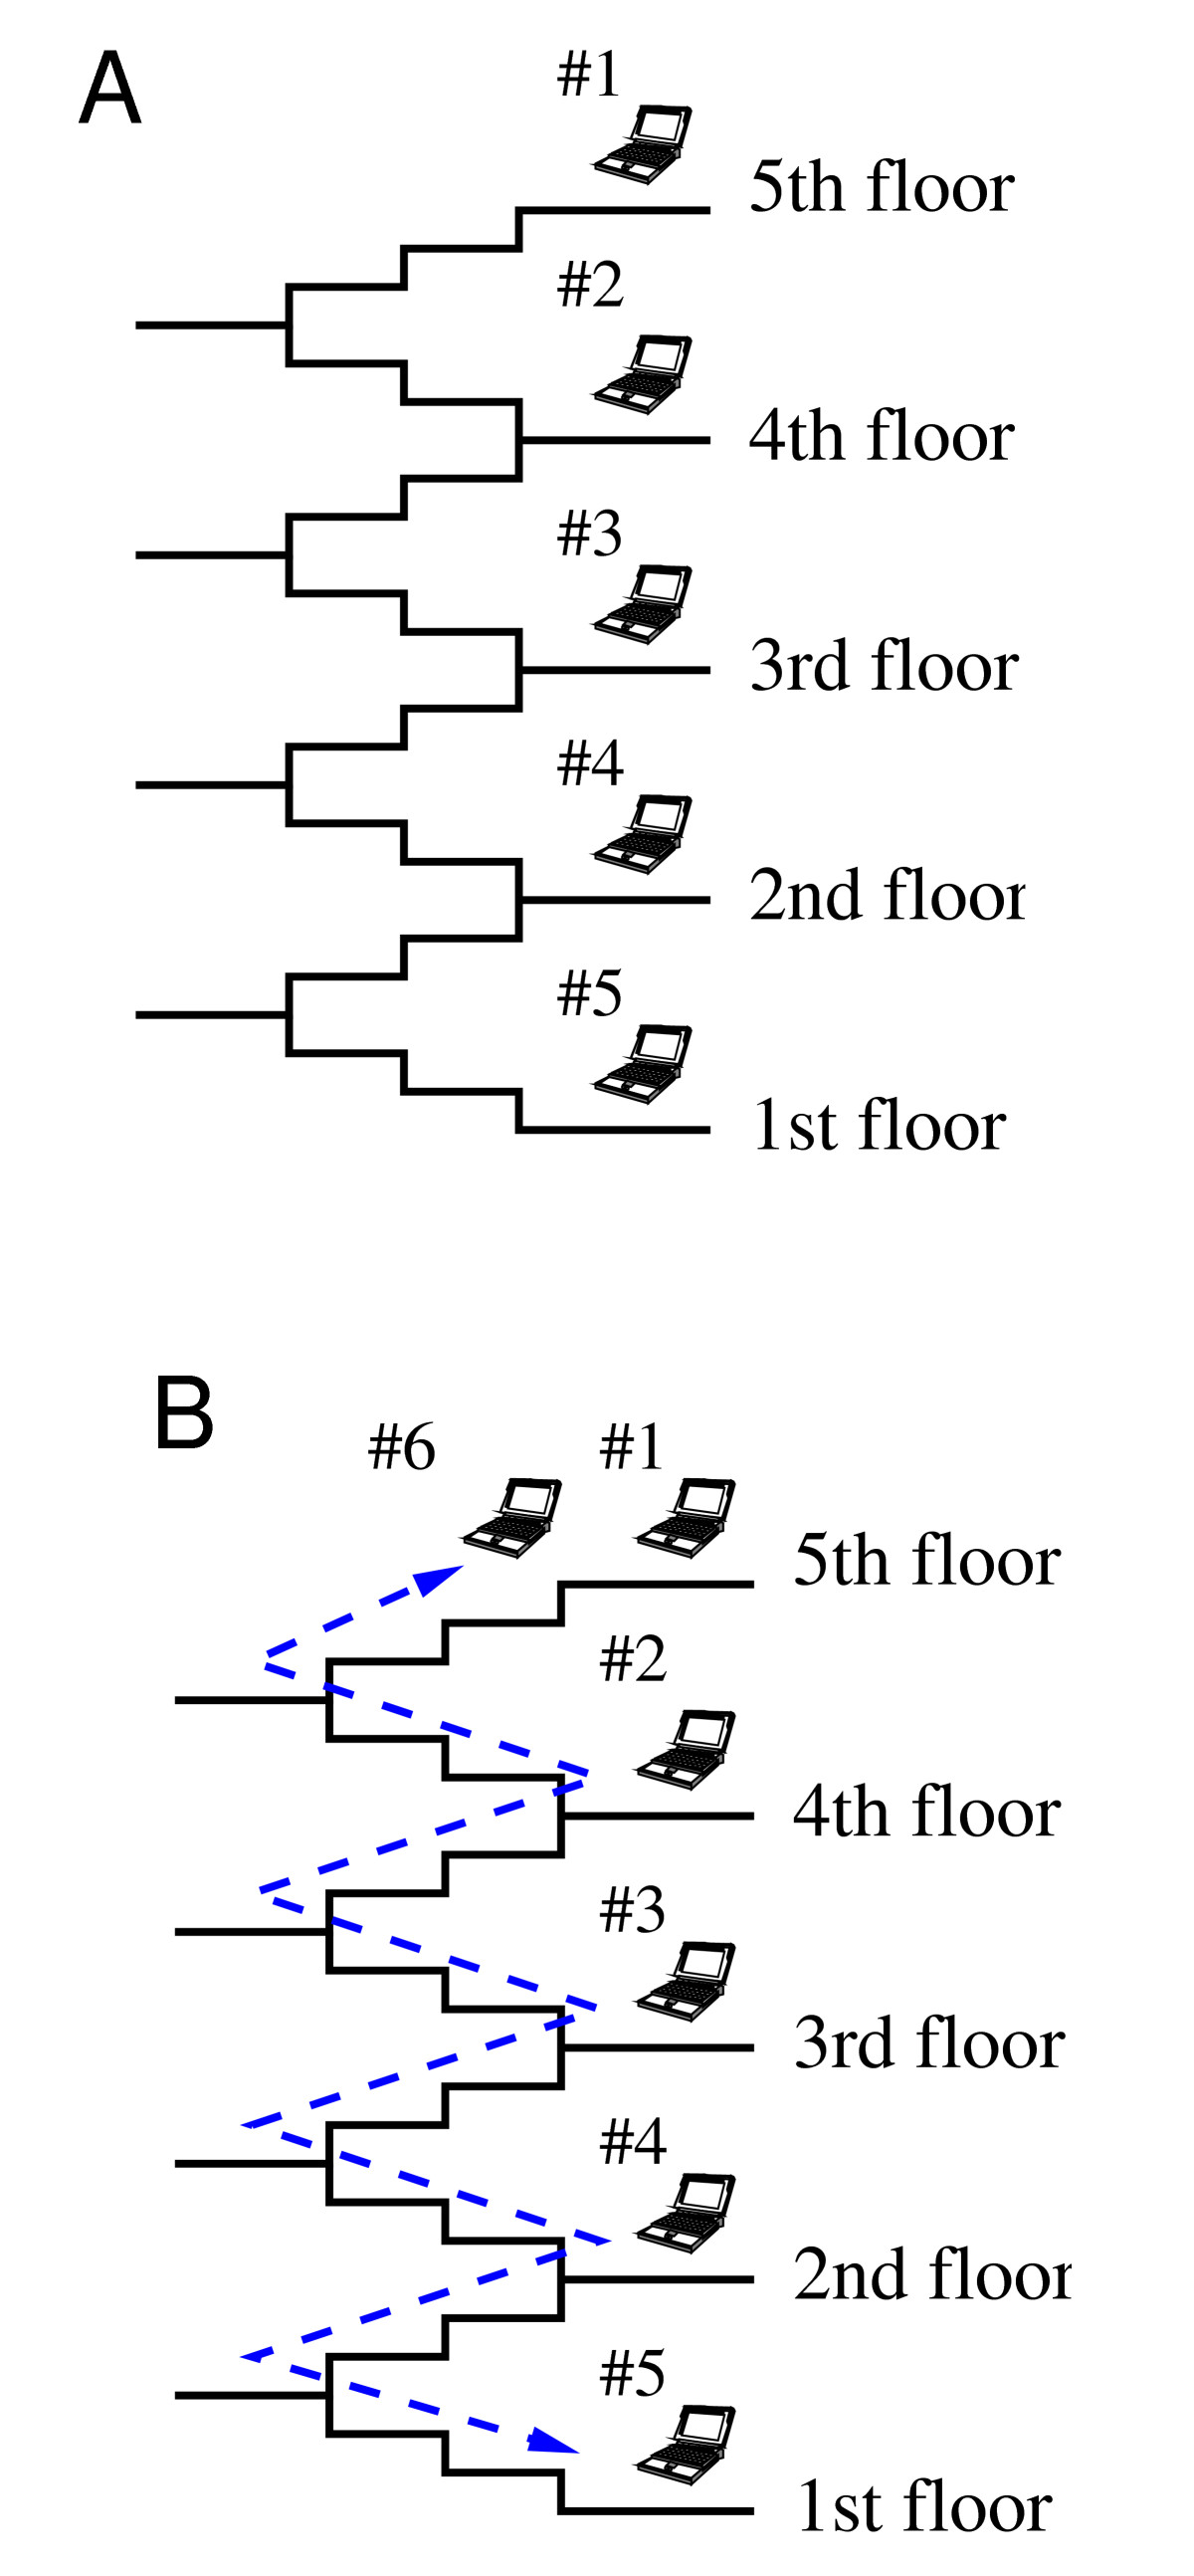 https://static-content.springer.com/image/art%3A10.1186%2F2192-1962-1-3/MediaObjects/13673_2011_Article_2_Fig3_HTML.jpg